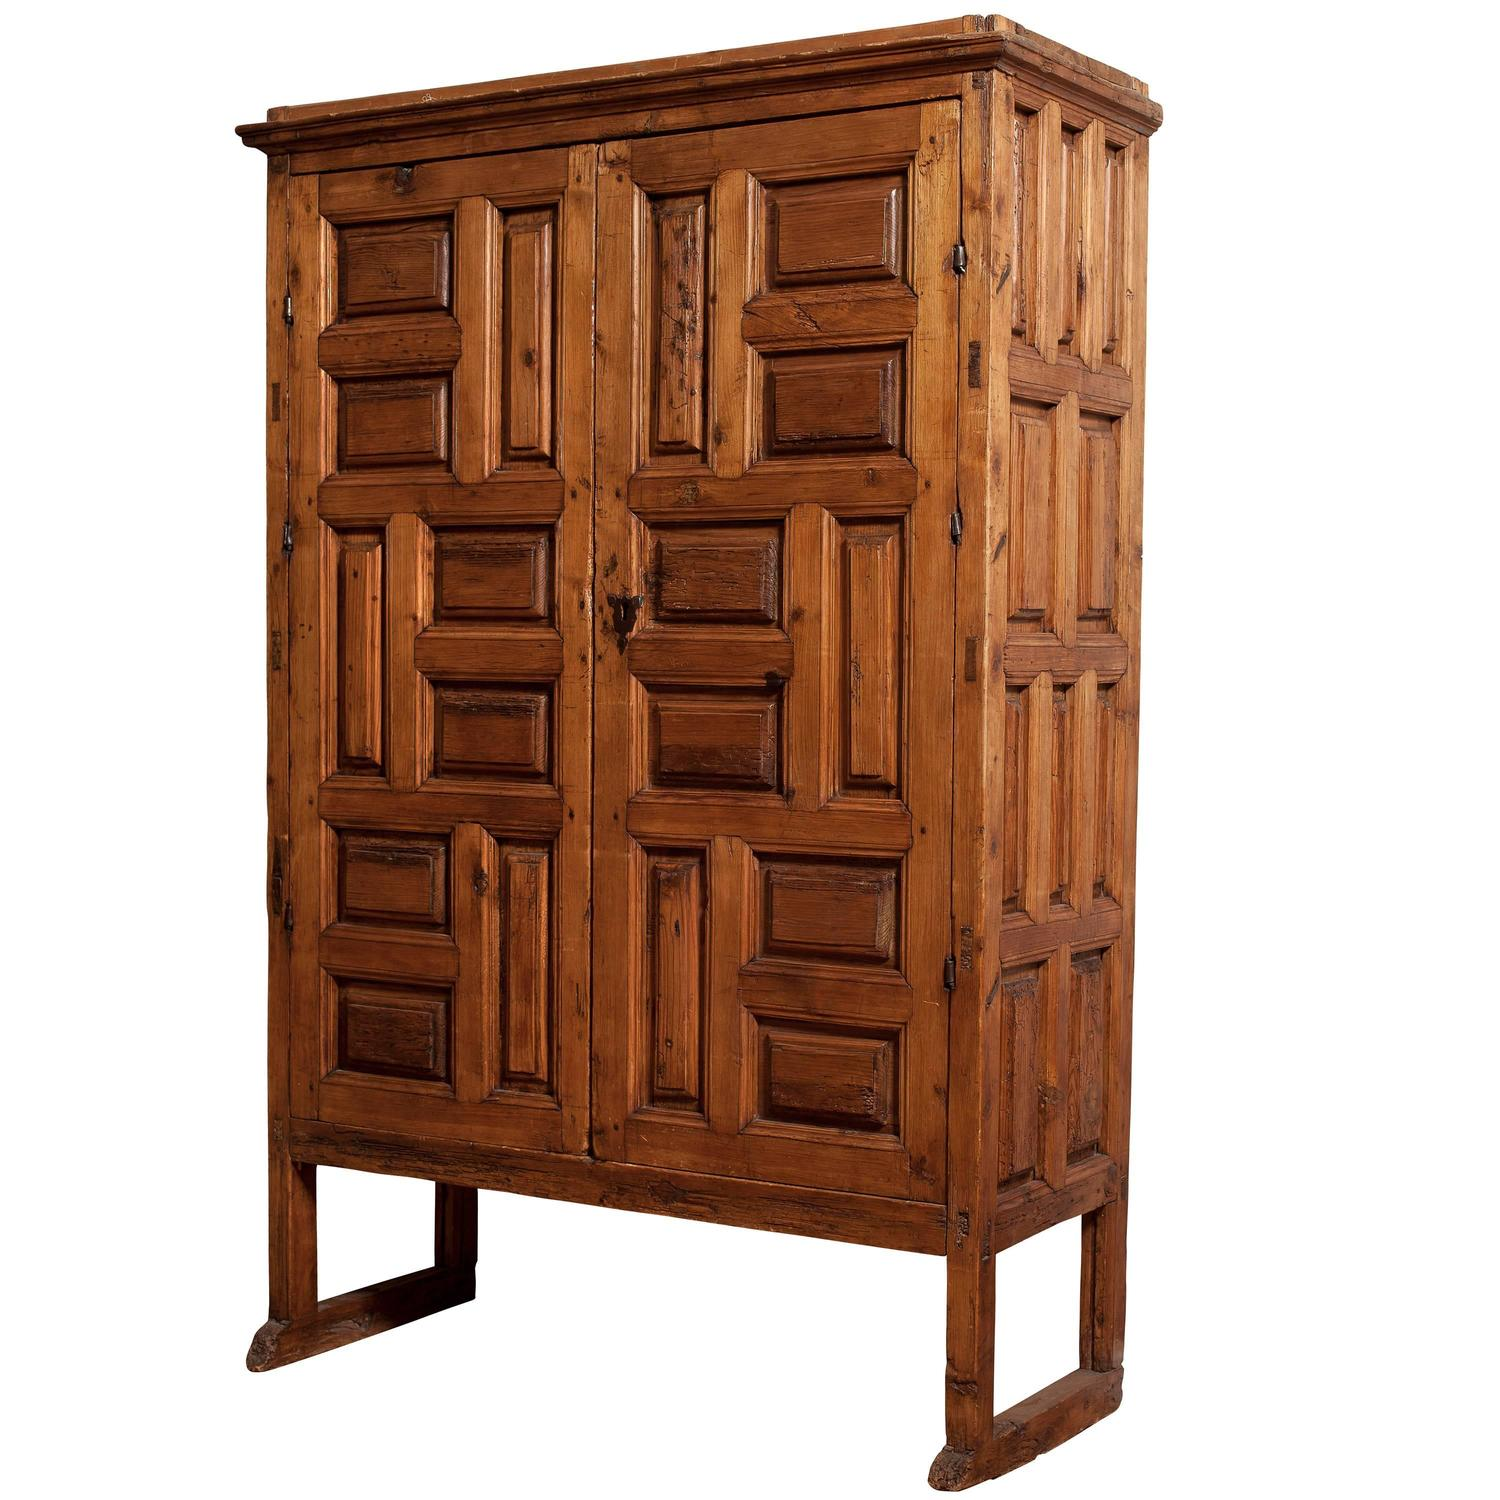 and wardrobes choose would this purchase like pin armoires rustic antique must you wardrobe painted item to if